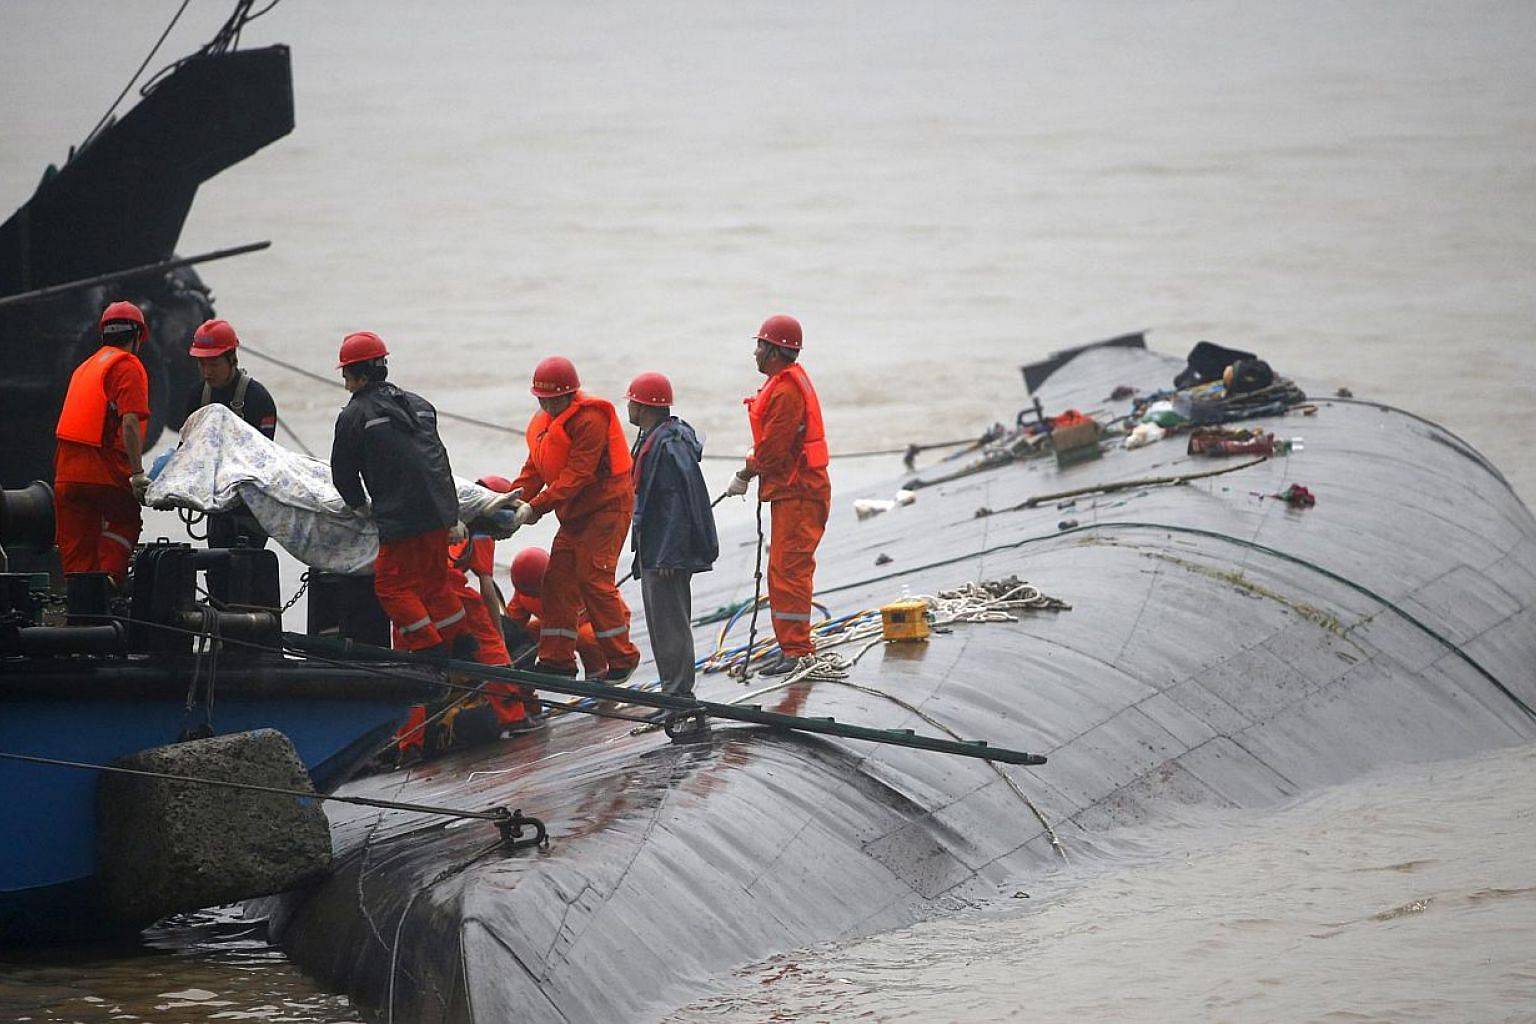 Rescue workers carry a body from a sunken ship in the Jianli section of Yangtze River, Hubei province, China, on June 2, 2015. The sinking of the cruise boat is likely to mar the country's generally clean maritime safety record, which hasn't suffered